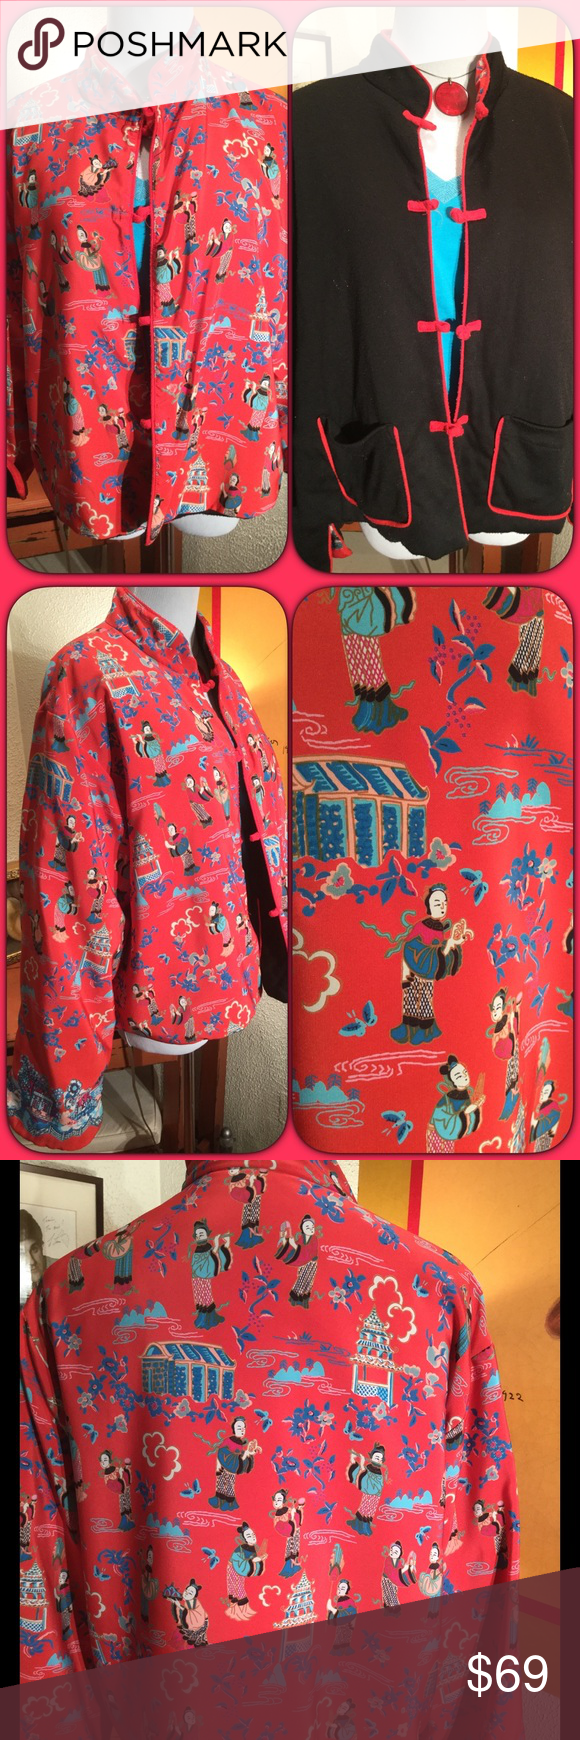 "Whimsical Reversible Asian Fleece Jacket So fun!! This jacket will totally rock your look and keep you warm. I bought it for the wonderful pattern💕 the black side is a fleece and does have some piling and two pockets! Frog enclosures, mandarin collar. 21"" pit to pit 22"" long. Would fit small - medium absolutely delightful! Very good vintage condition (not excellent cause of the piling) Vintage Jackets & Coats"